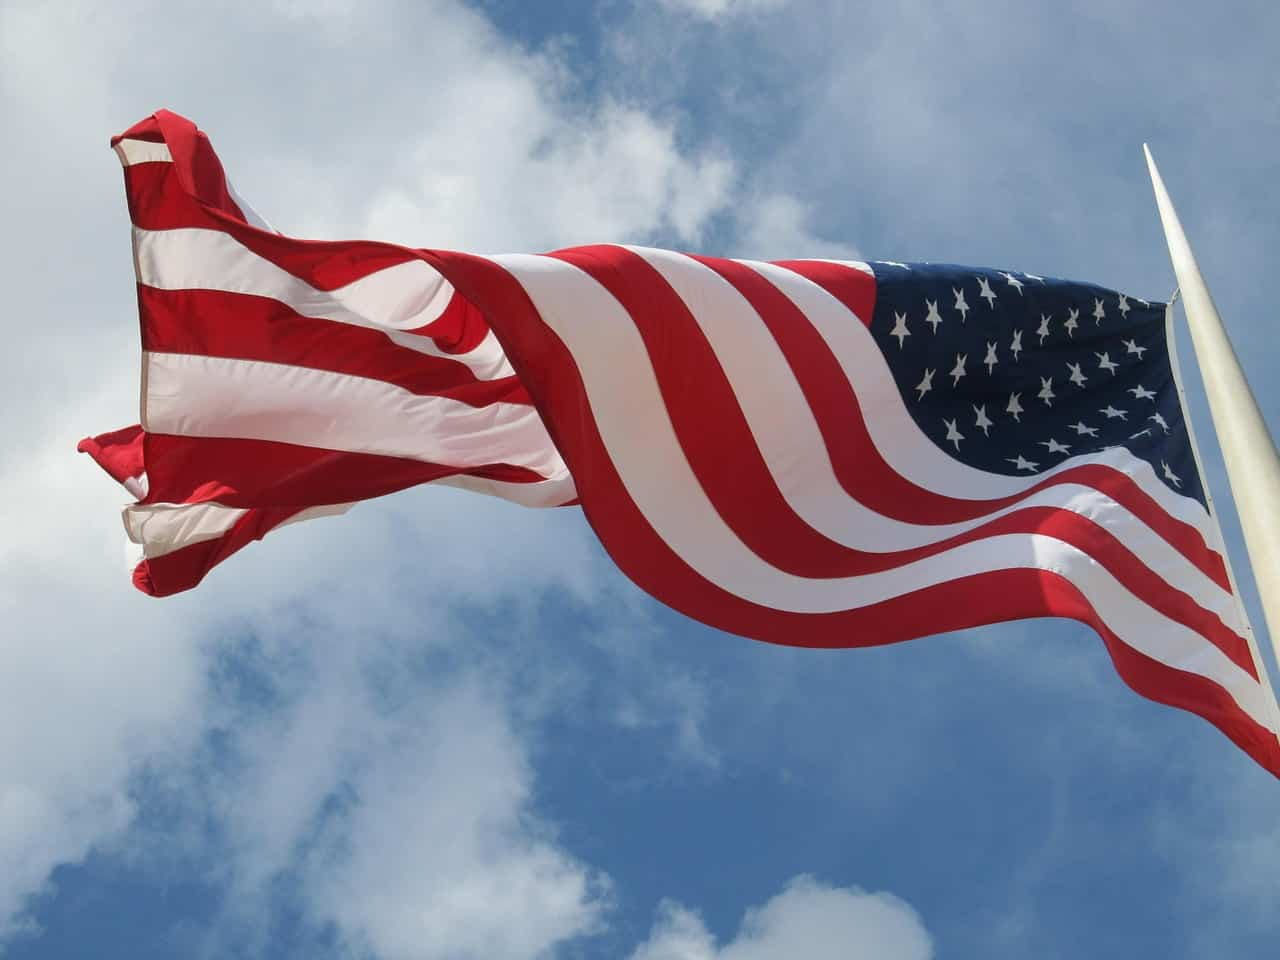 It's Election Day - Right To Vote - American Flag